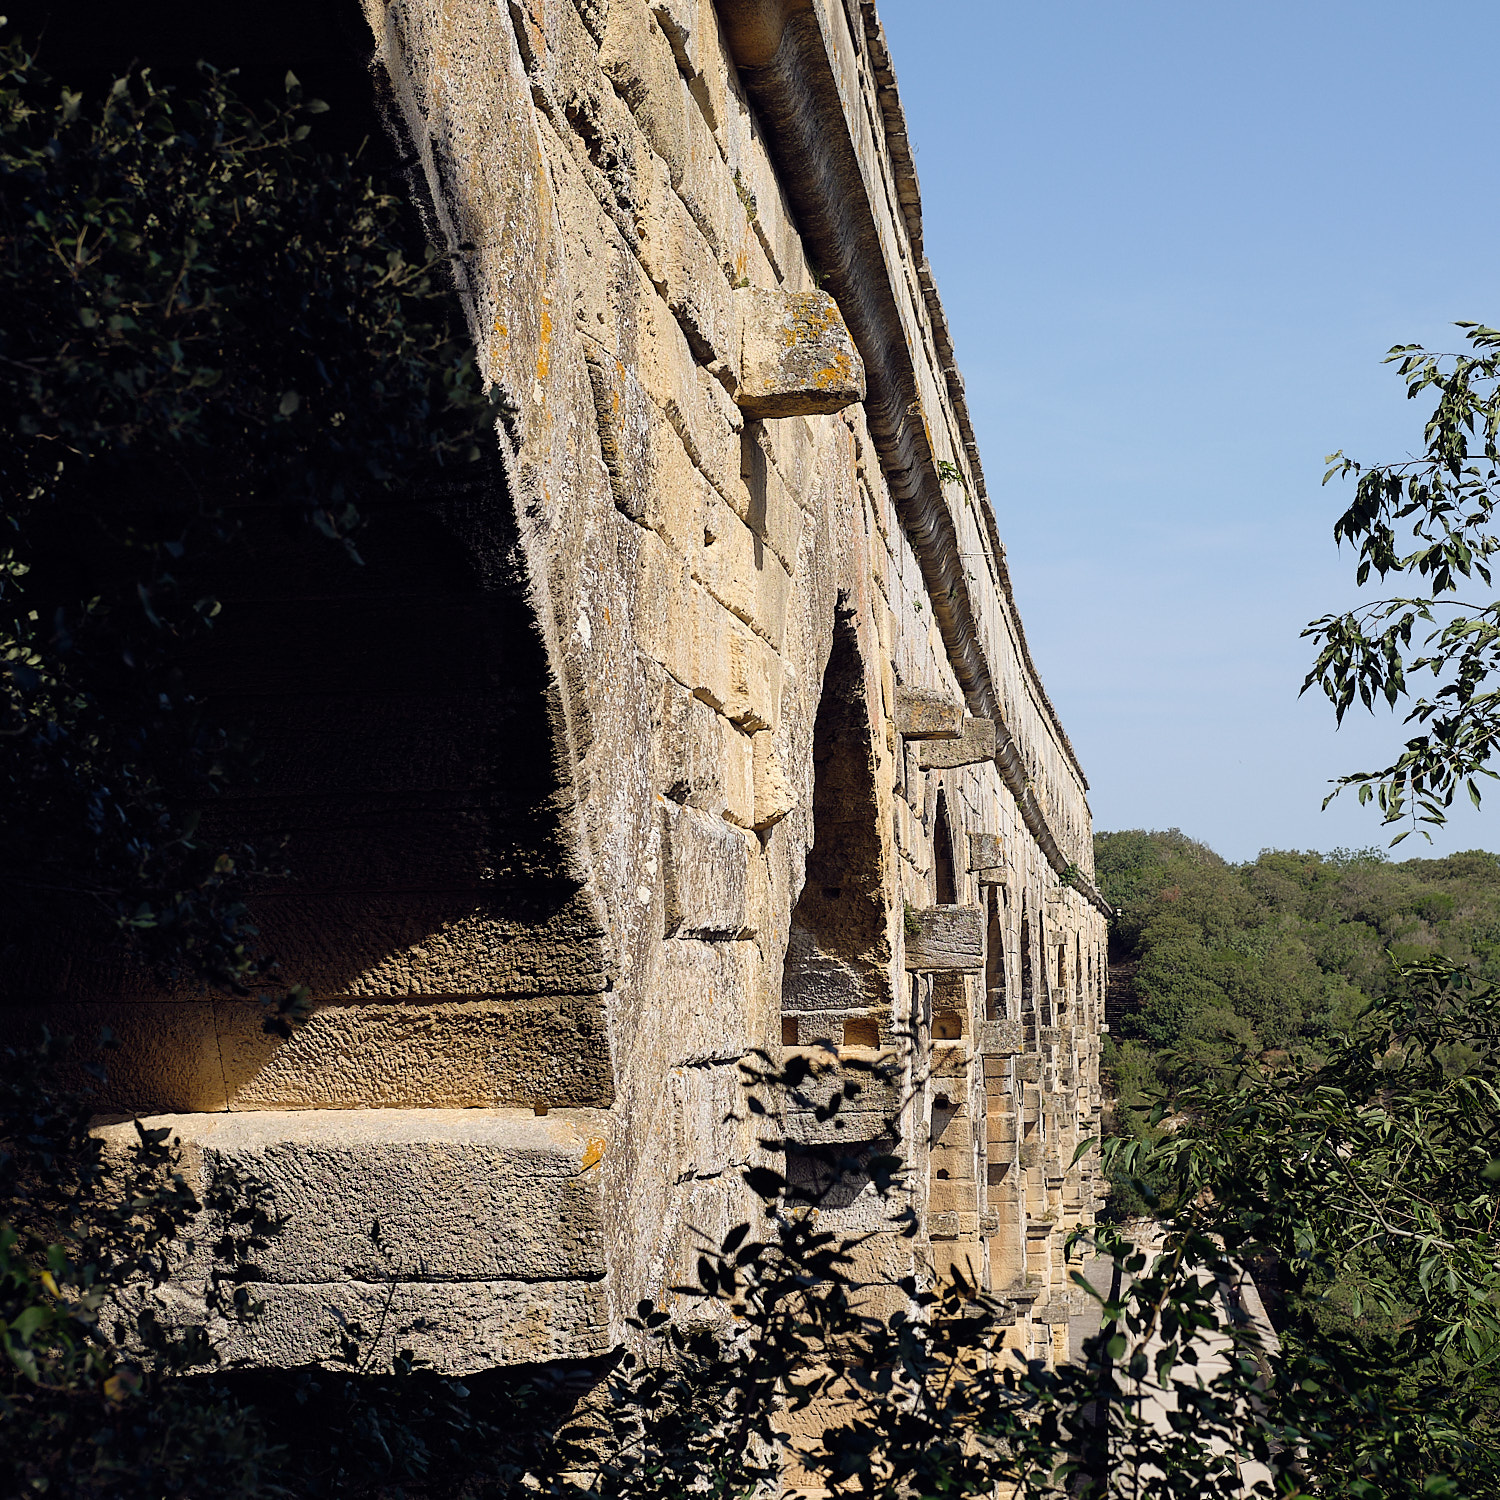 Pont du Gard the best preserved bridge of a 50 Km aqueduct with 35Km of tunnels ground in rock and several bridges made of limestone with rudimentary tools and cranes. It stands proud under the heat of the sun of June in the Provence.